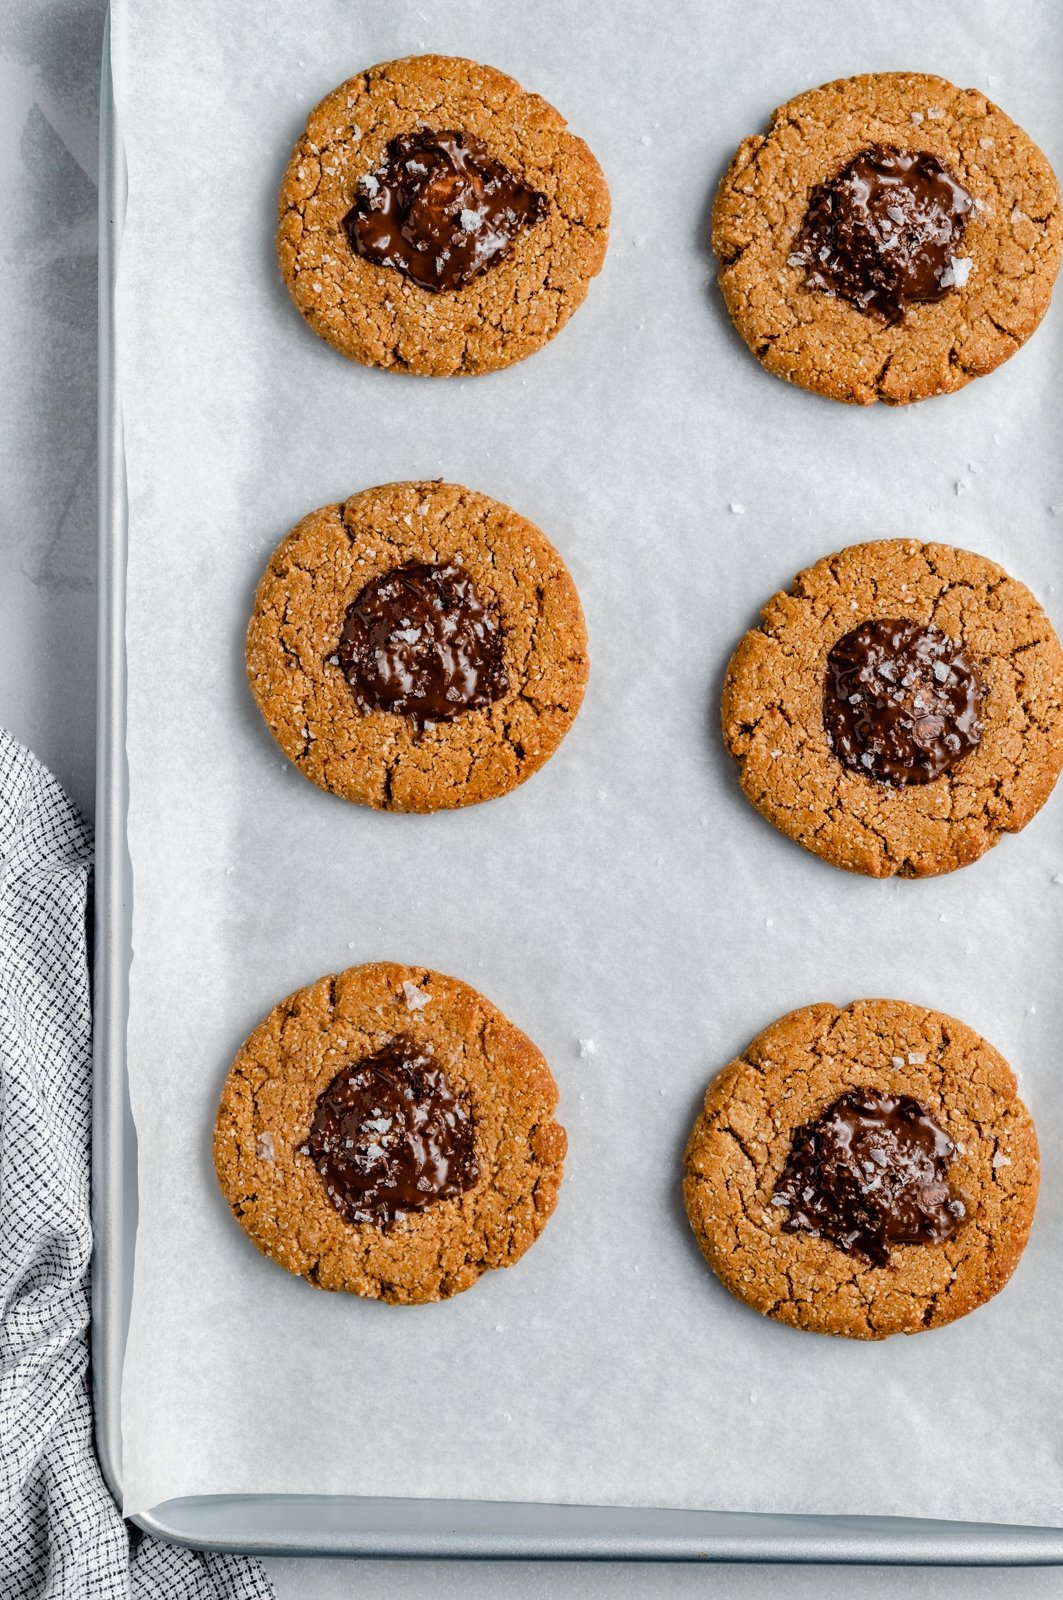 healthy peanut butter cup cookies on a baking sheet